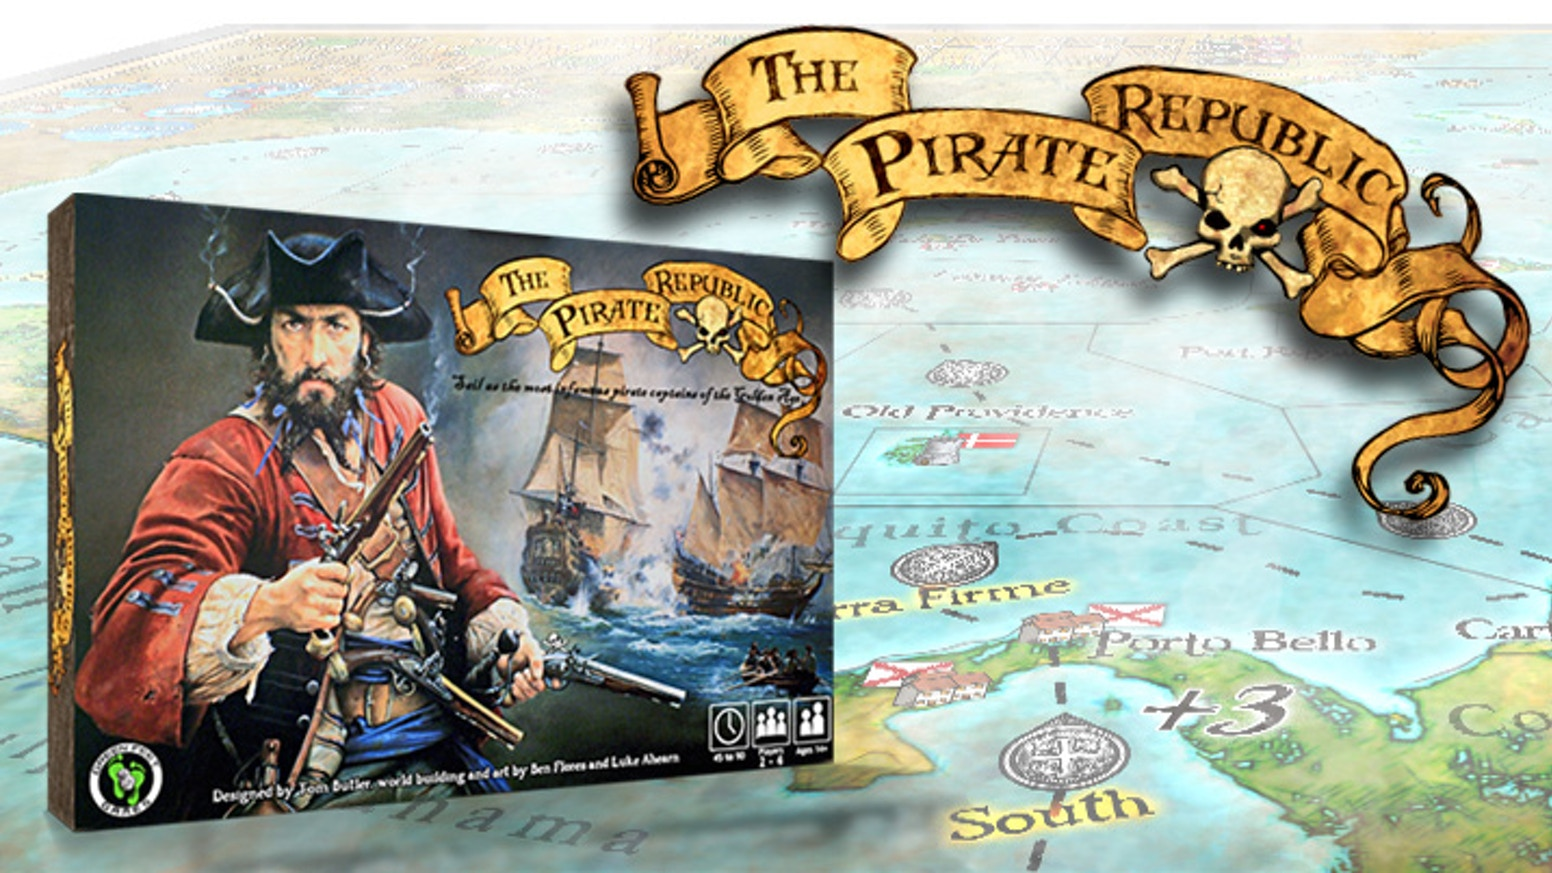 A swashbuckling board-game adventure for 1–5 players eager for pirates, pillage, and plunder on the high seas of the Spanish Main.